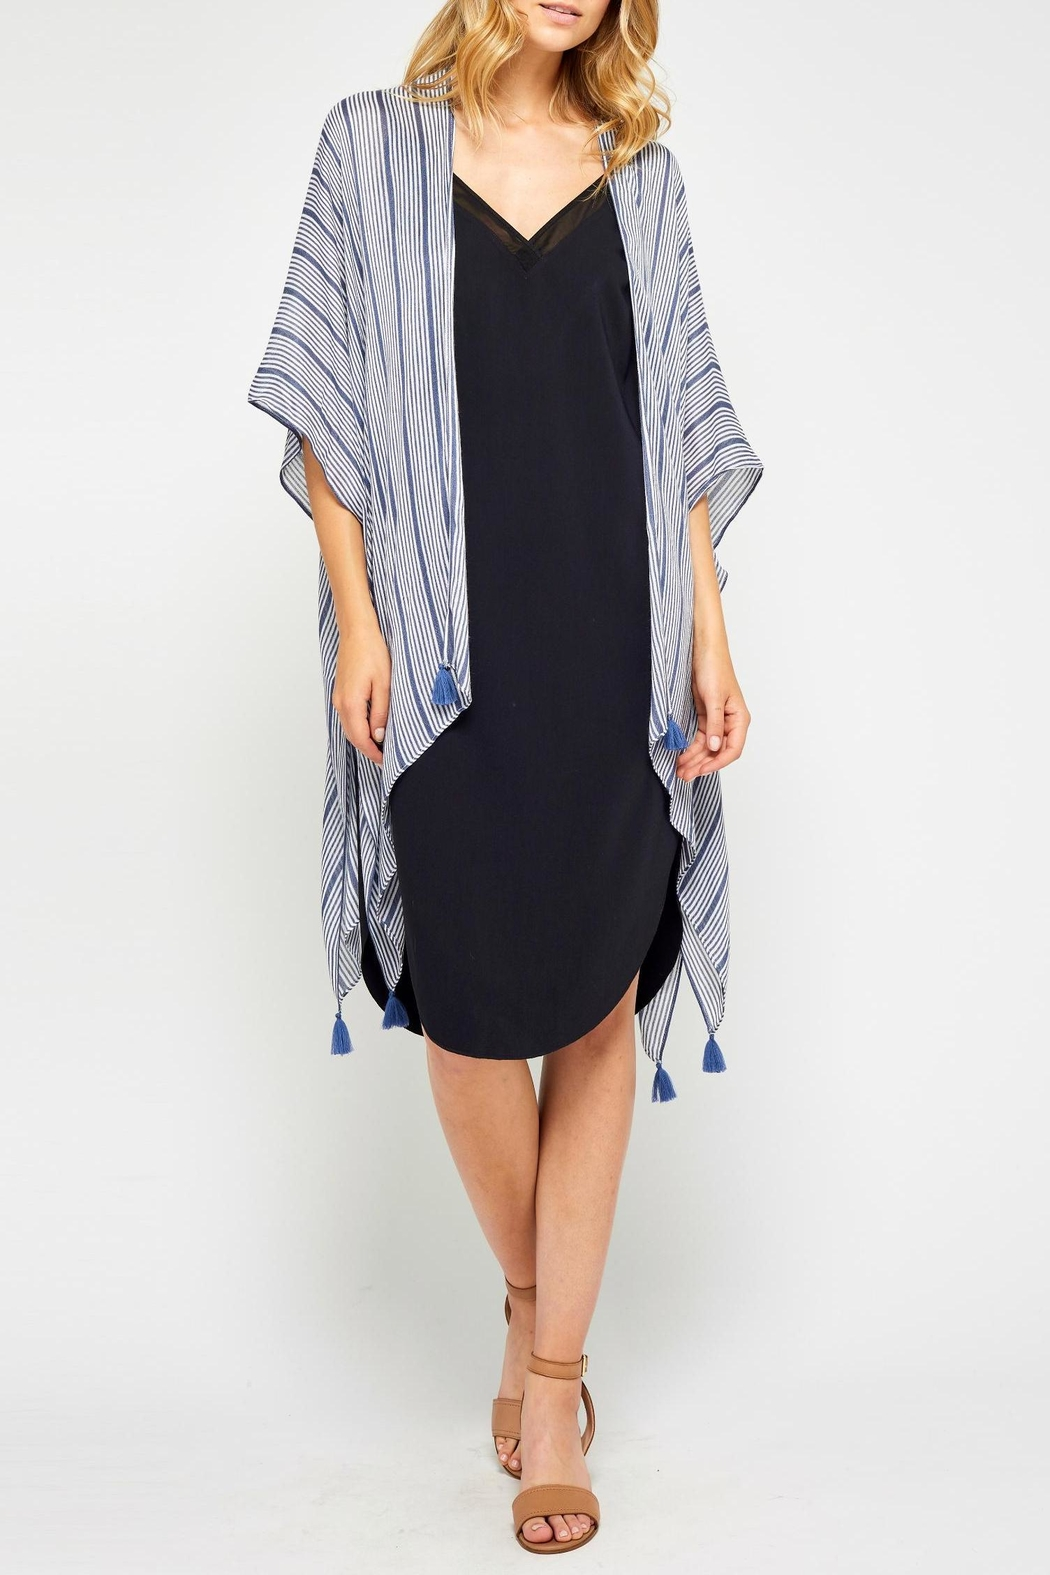 Gentle Fawn Blue Tassel Kimono from Ontario by Steel Style Garage ... 1be517560